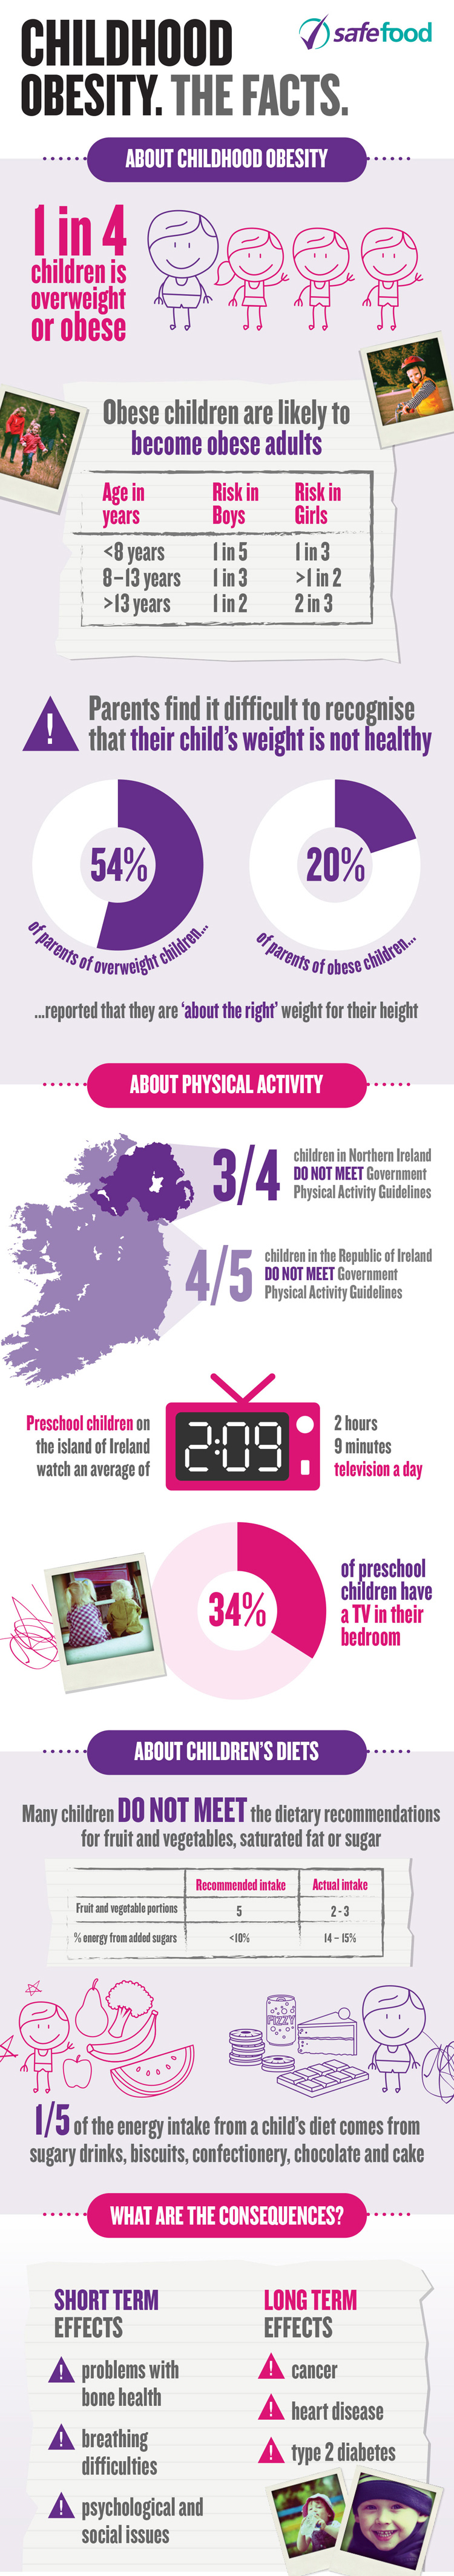 childhood-obesity-the-facts_526547b7e6233